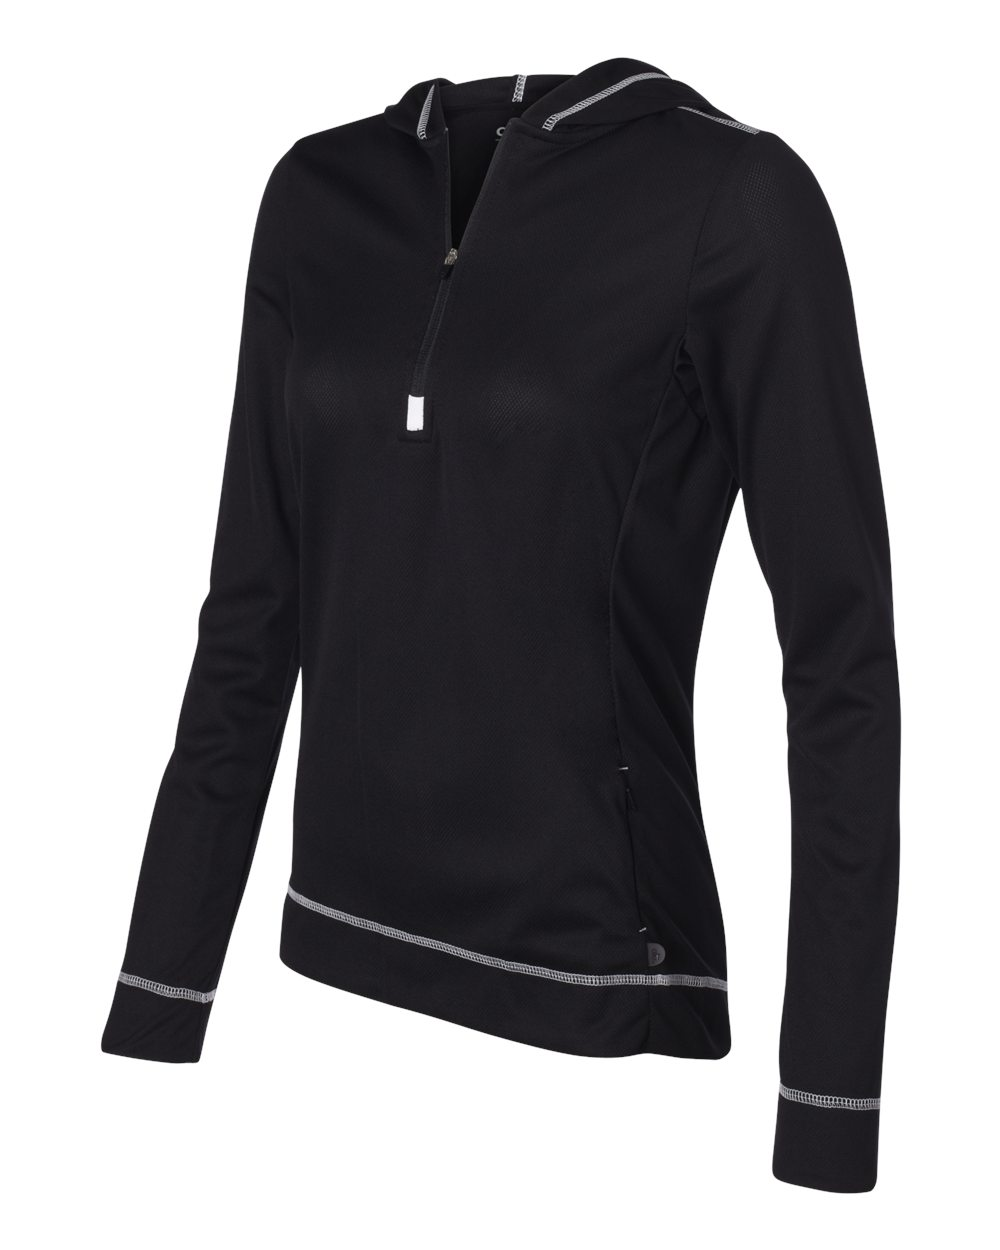 Alo Womens Performance Half Zip Hoodie W3002 Black - White